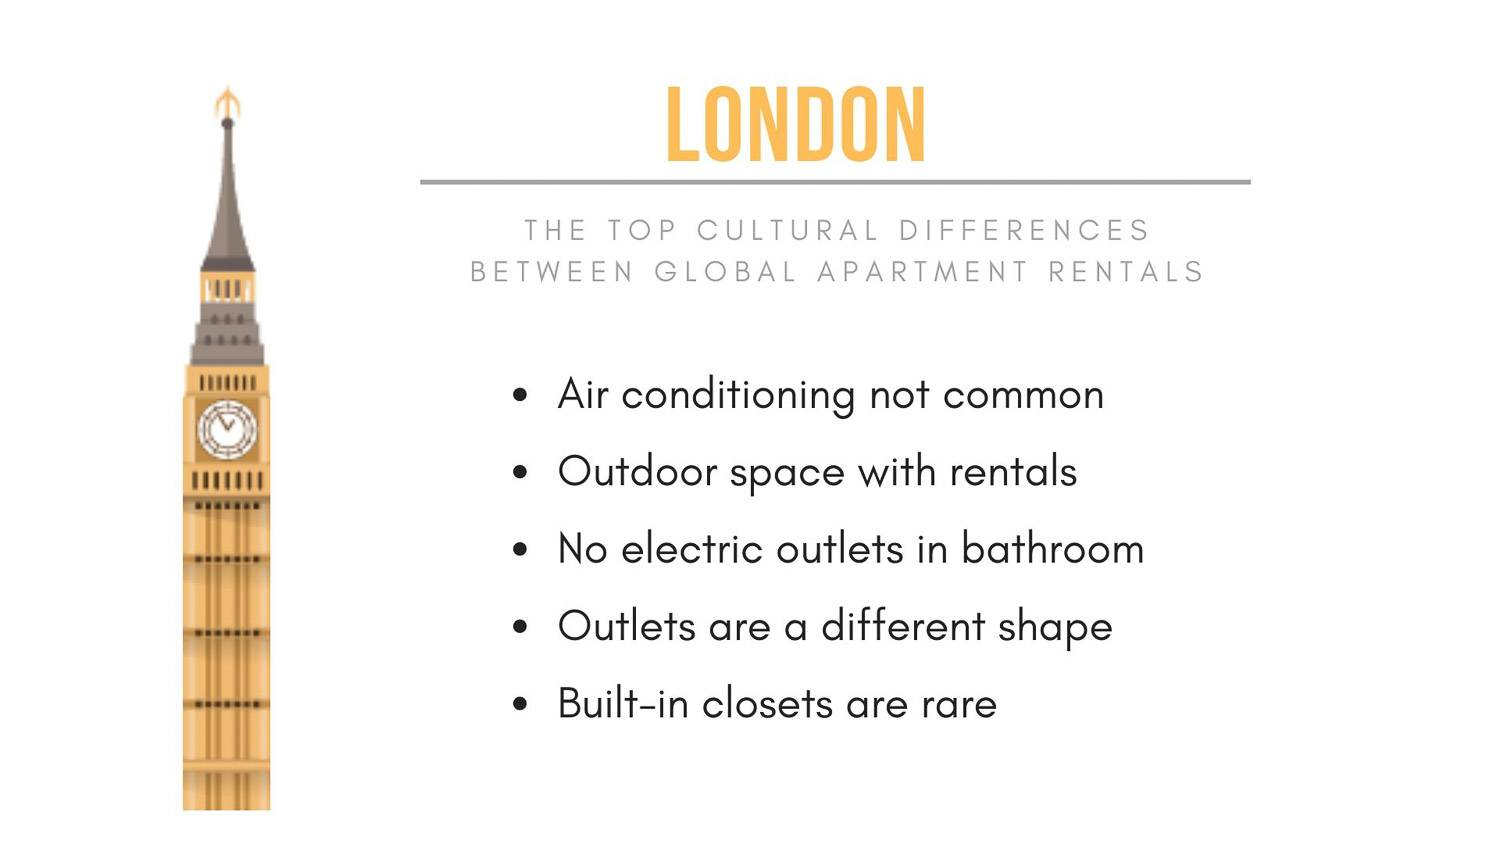 New York Habitat infographic describing the unique features of London apartment rentals.